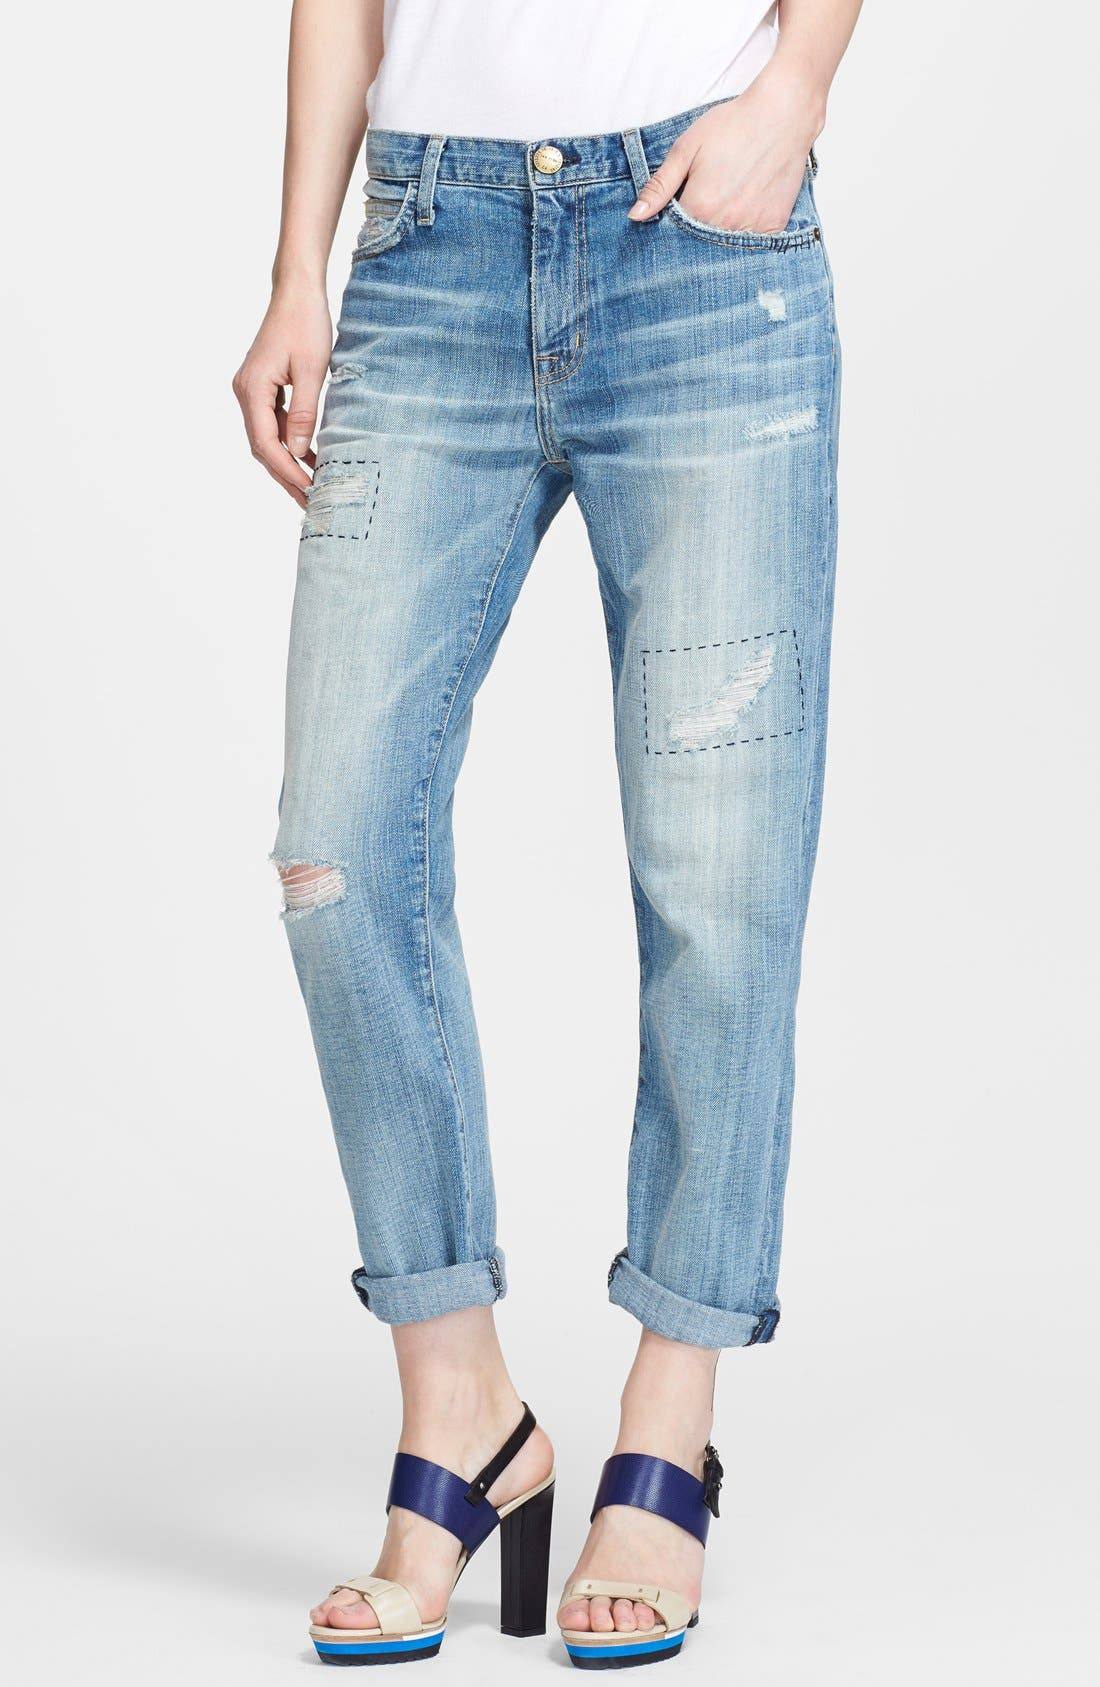 Alternate Image 1 Selected - Current/Elliott 'The Fling' Rolled Jeans (Buckeye Repair)